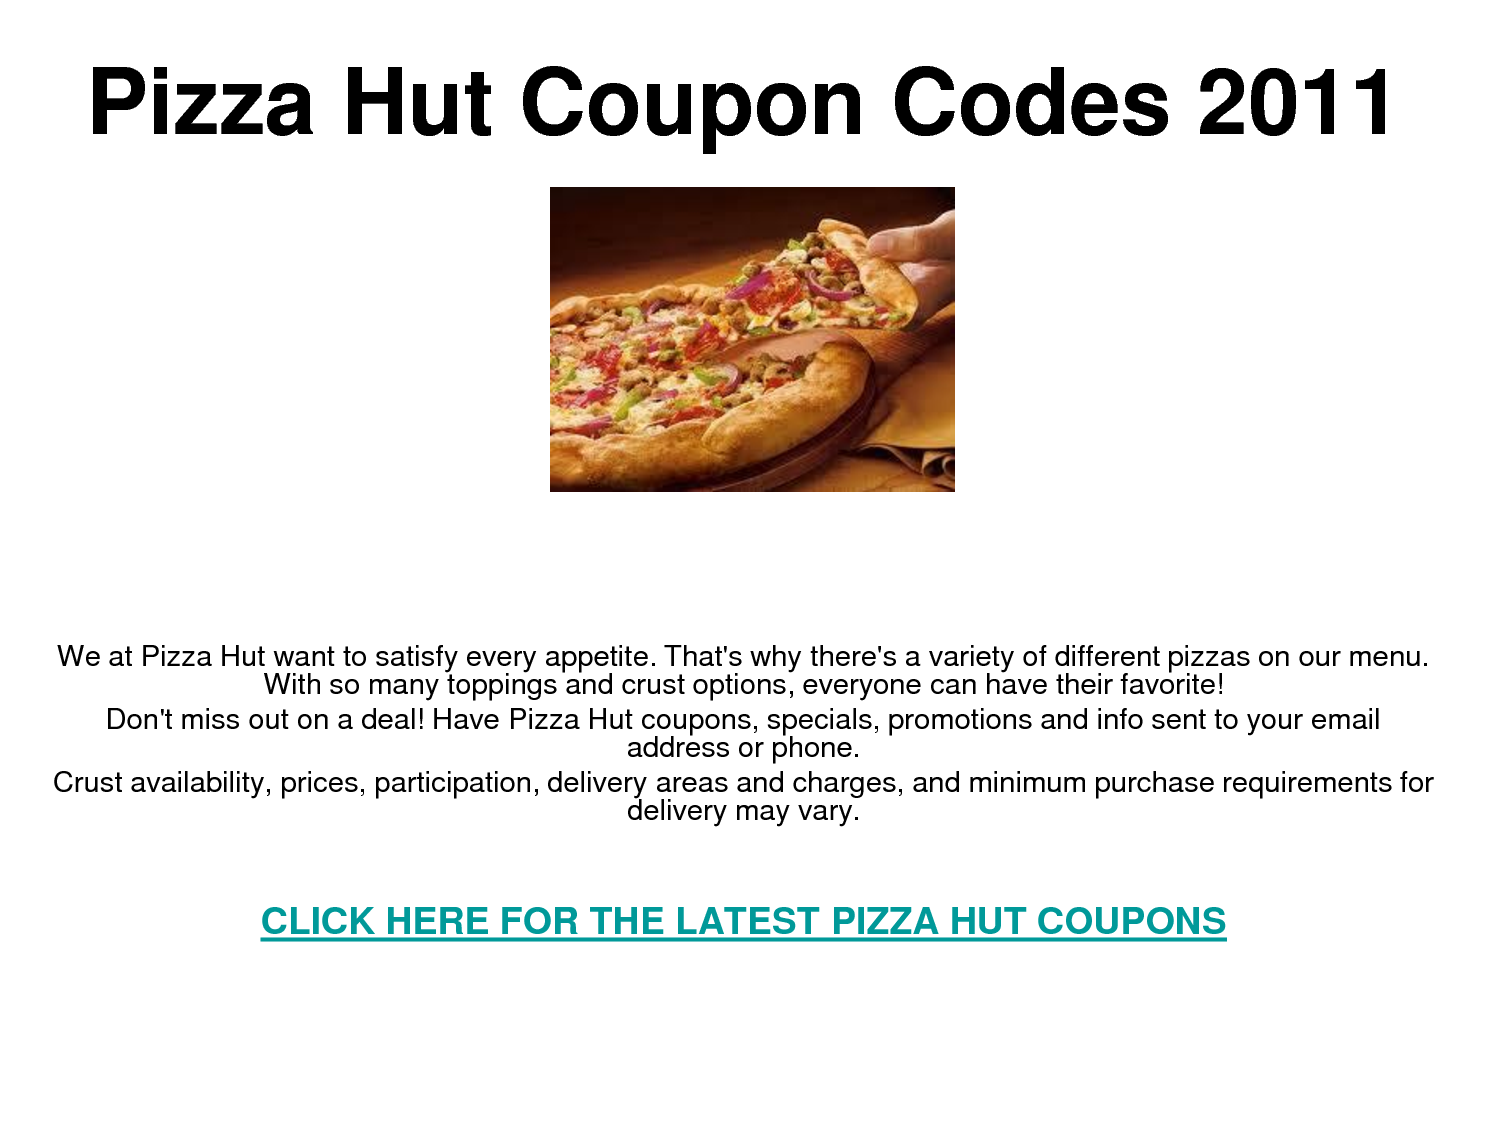 Active coupon code